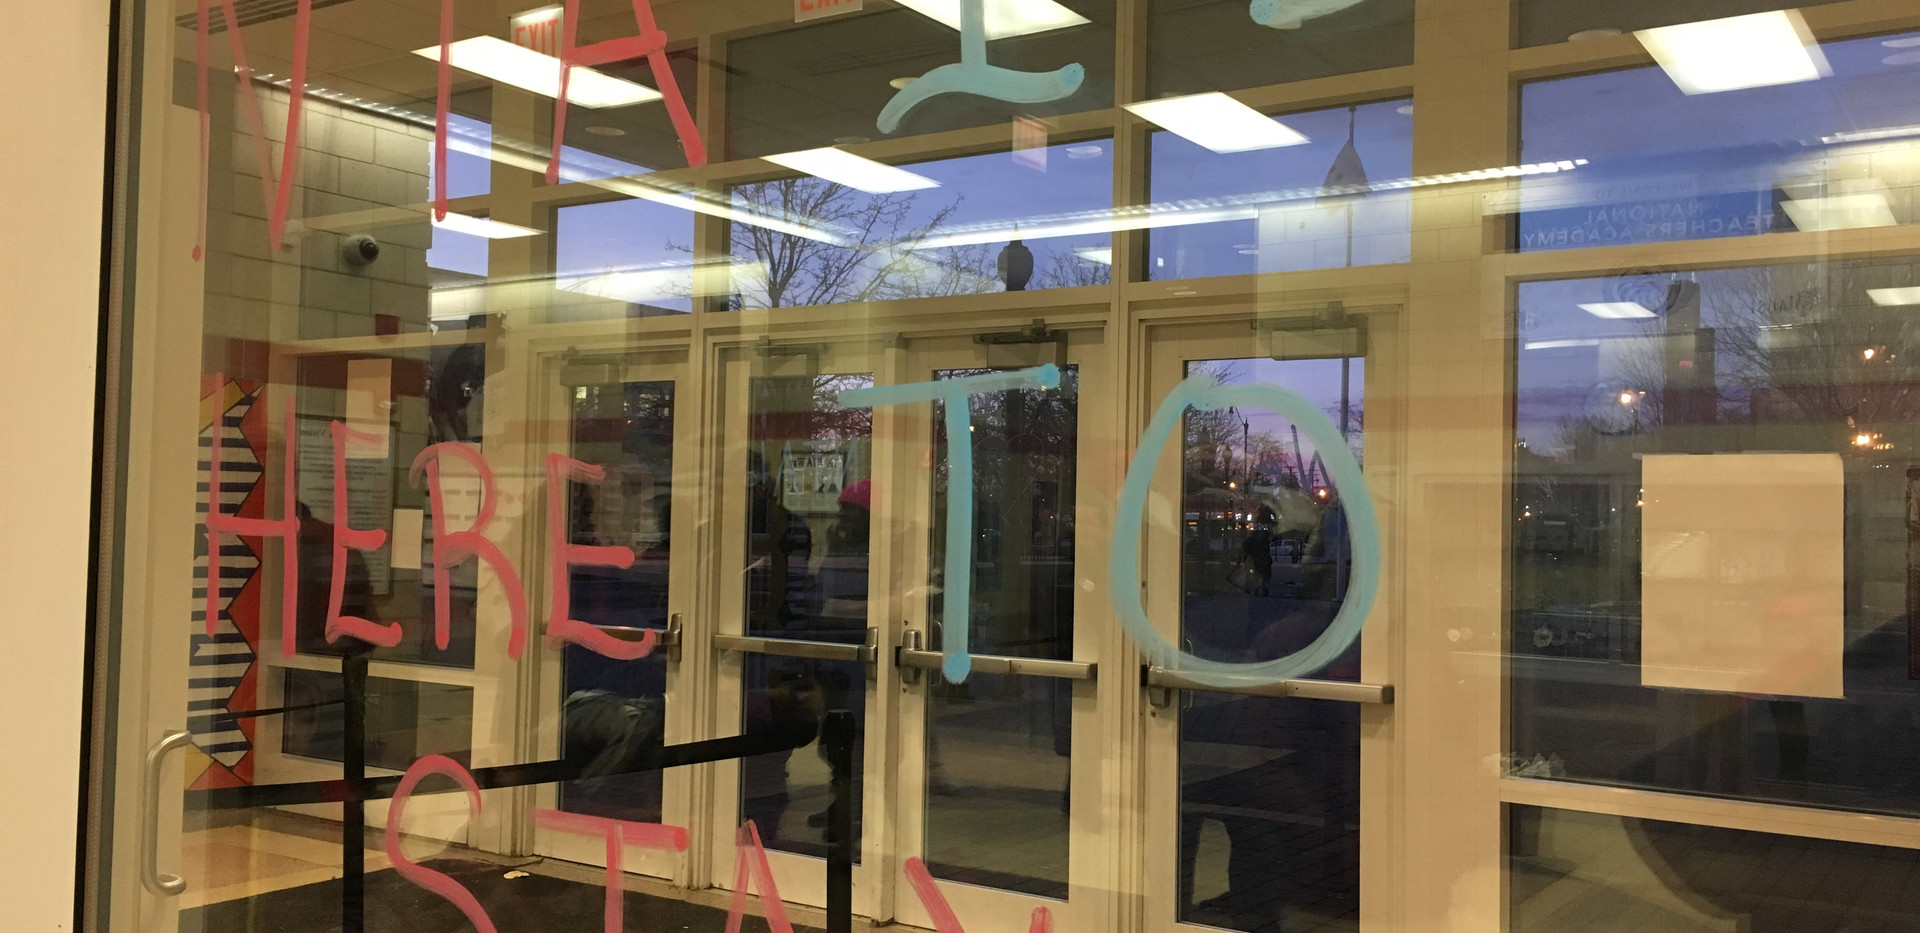 Throughout the campaign, educators do their best to keep students' and families' spirits up. Here, the anxiety of the expected court decision is off-set in artwork throughout the school.